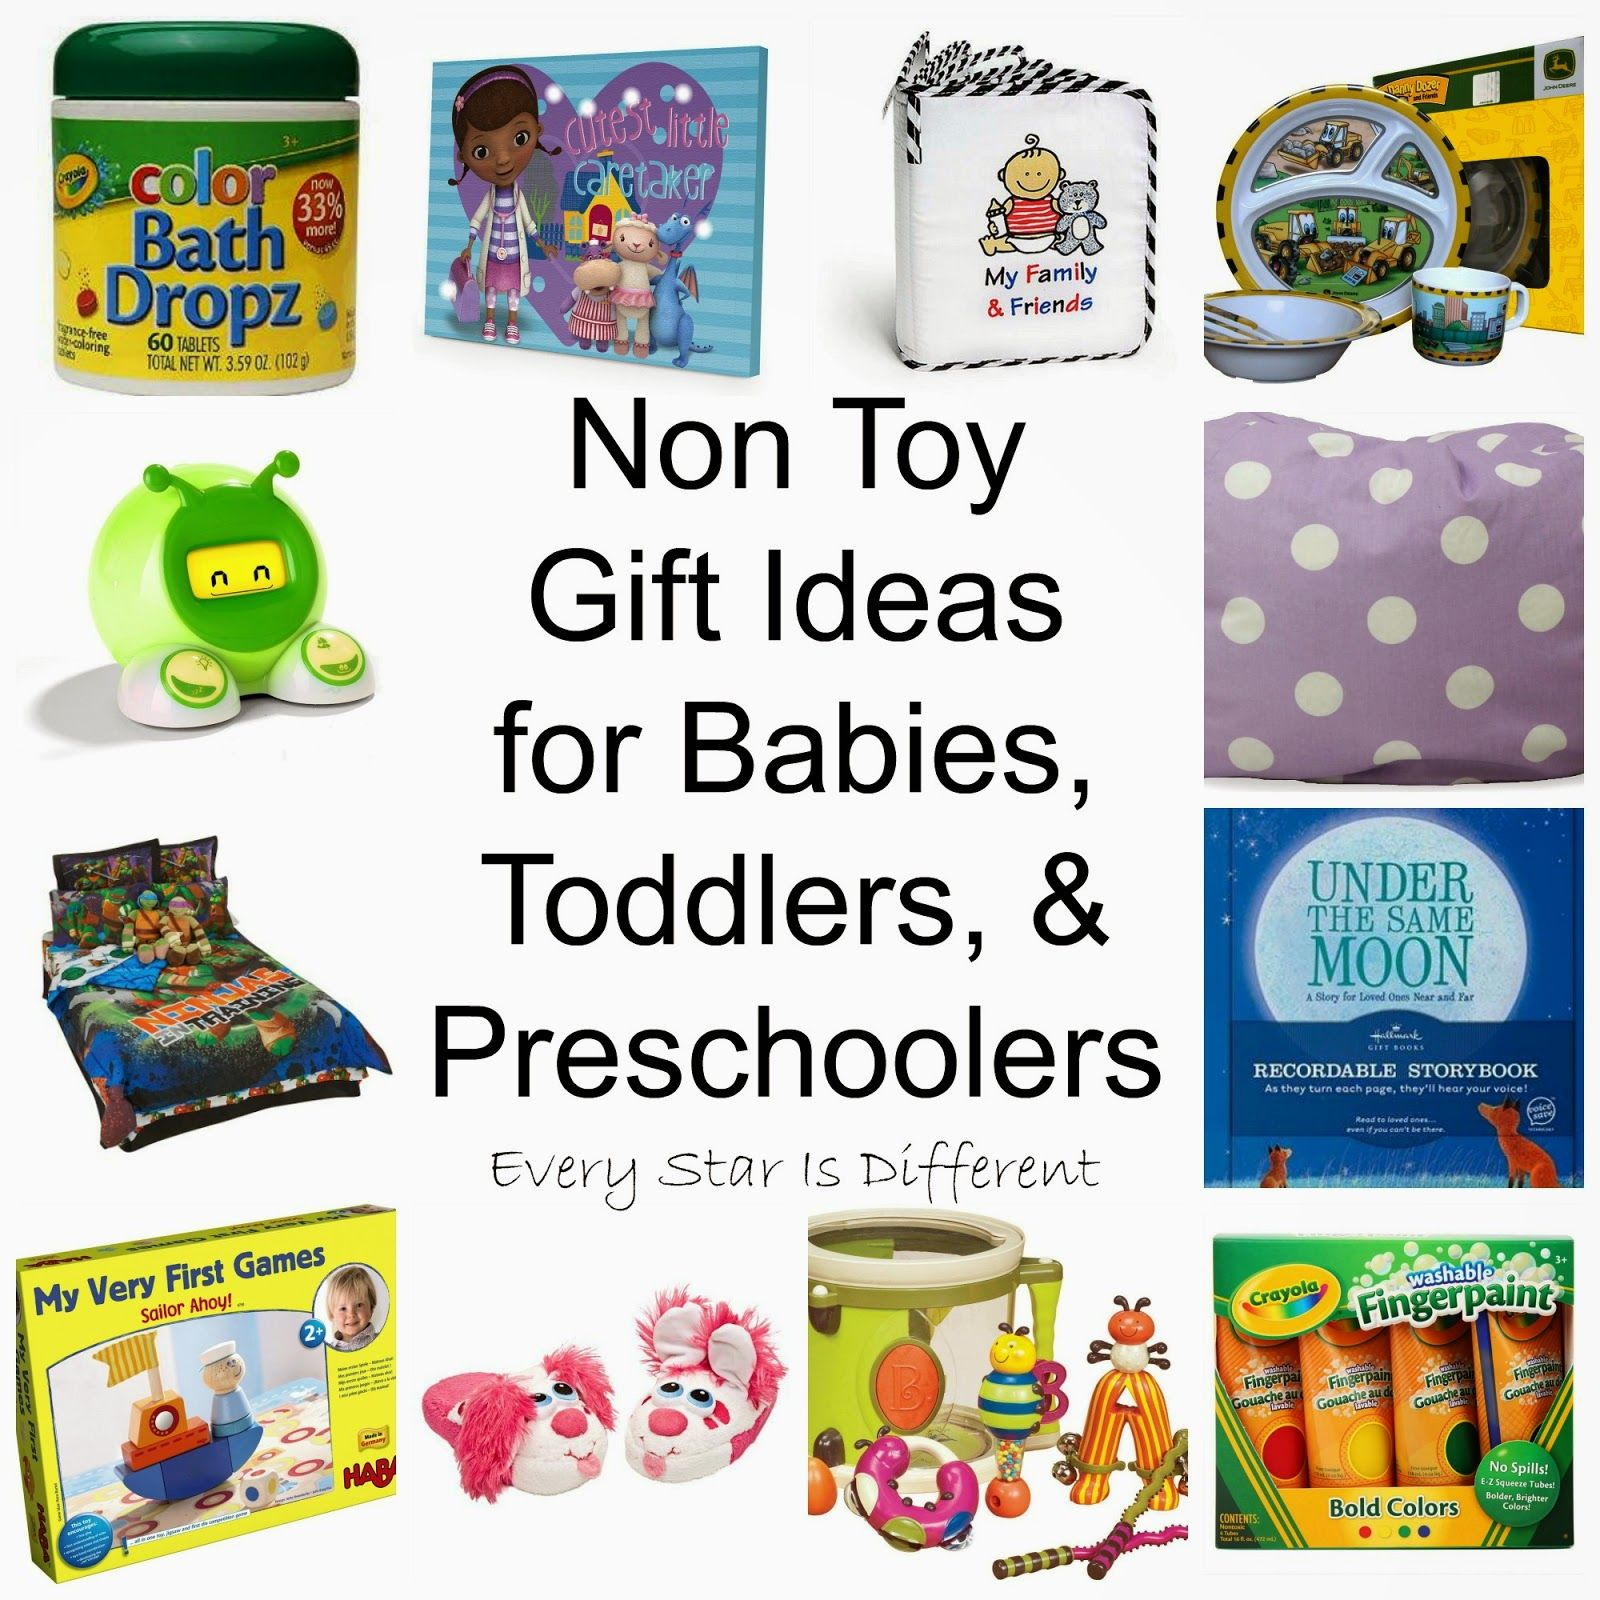 non toy gift ideas for babies, toddlers, & preschoolers | toddler